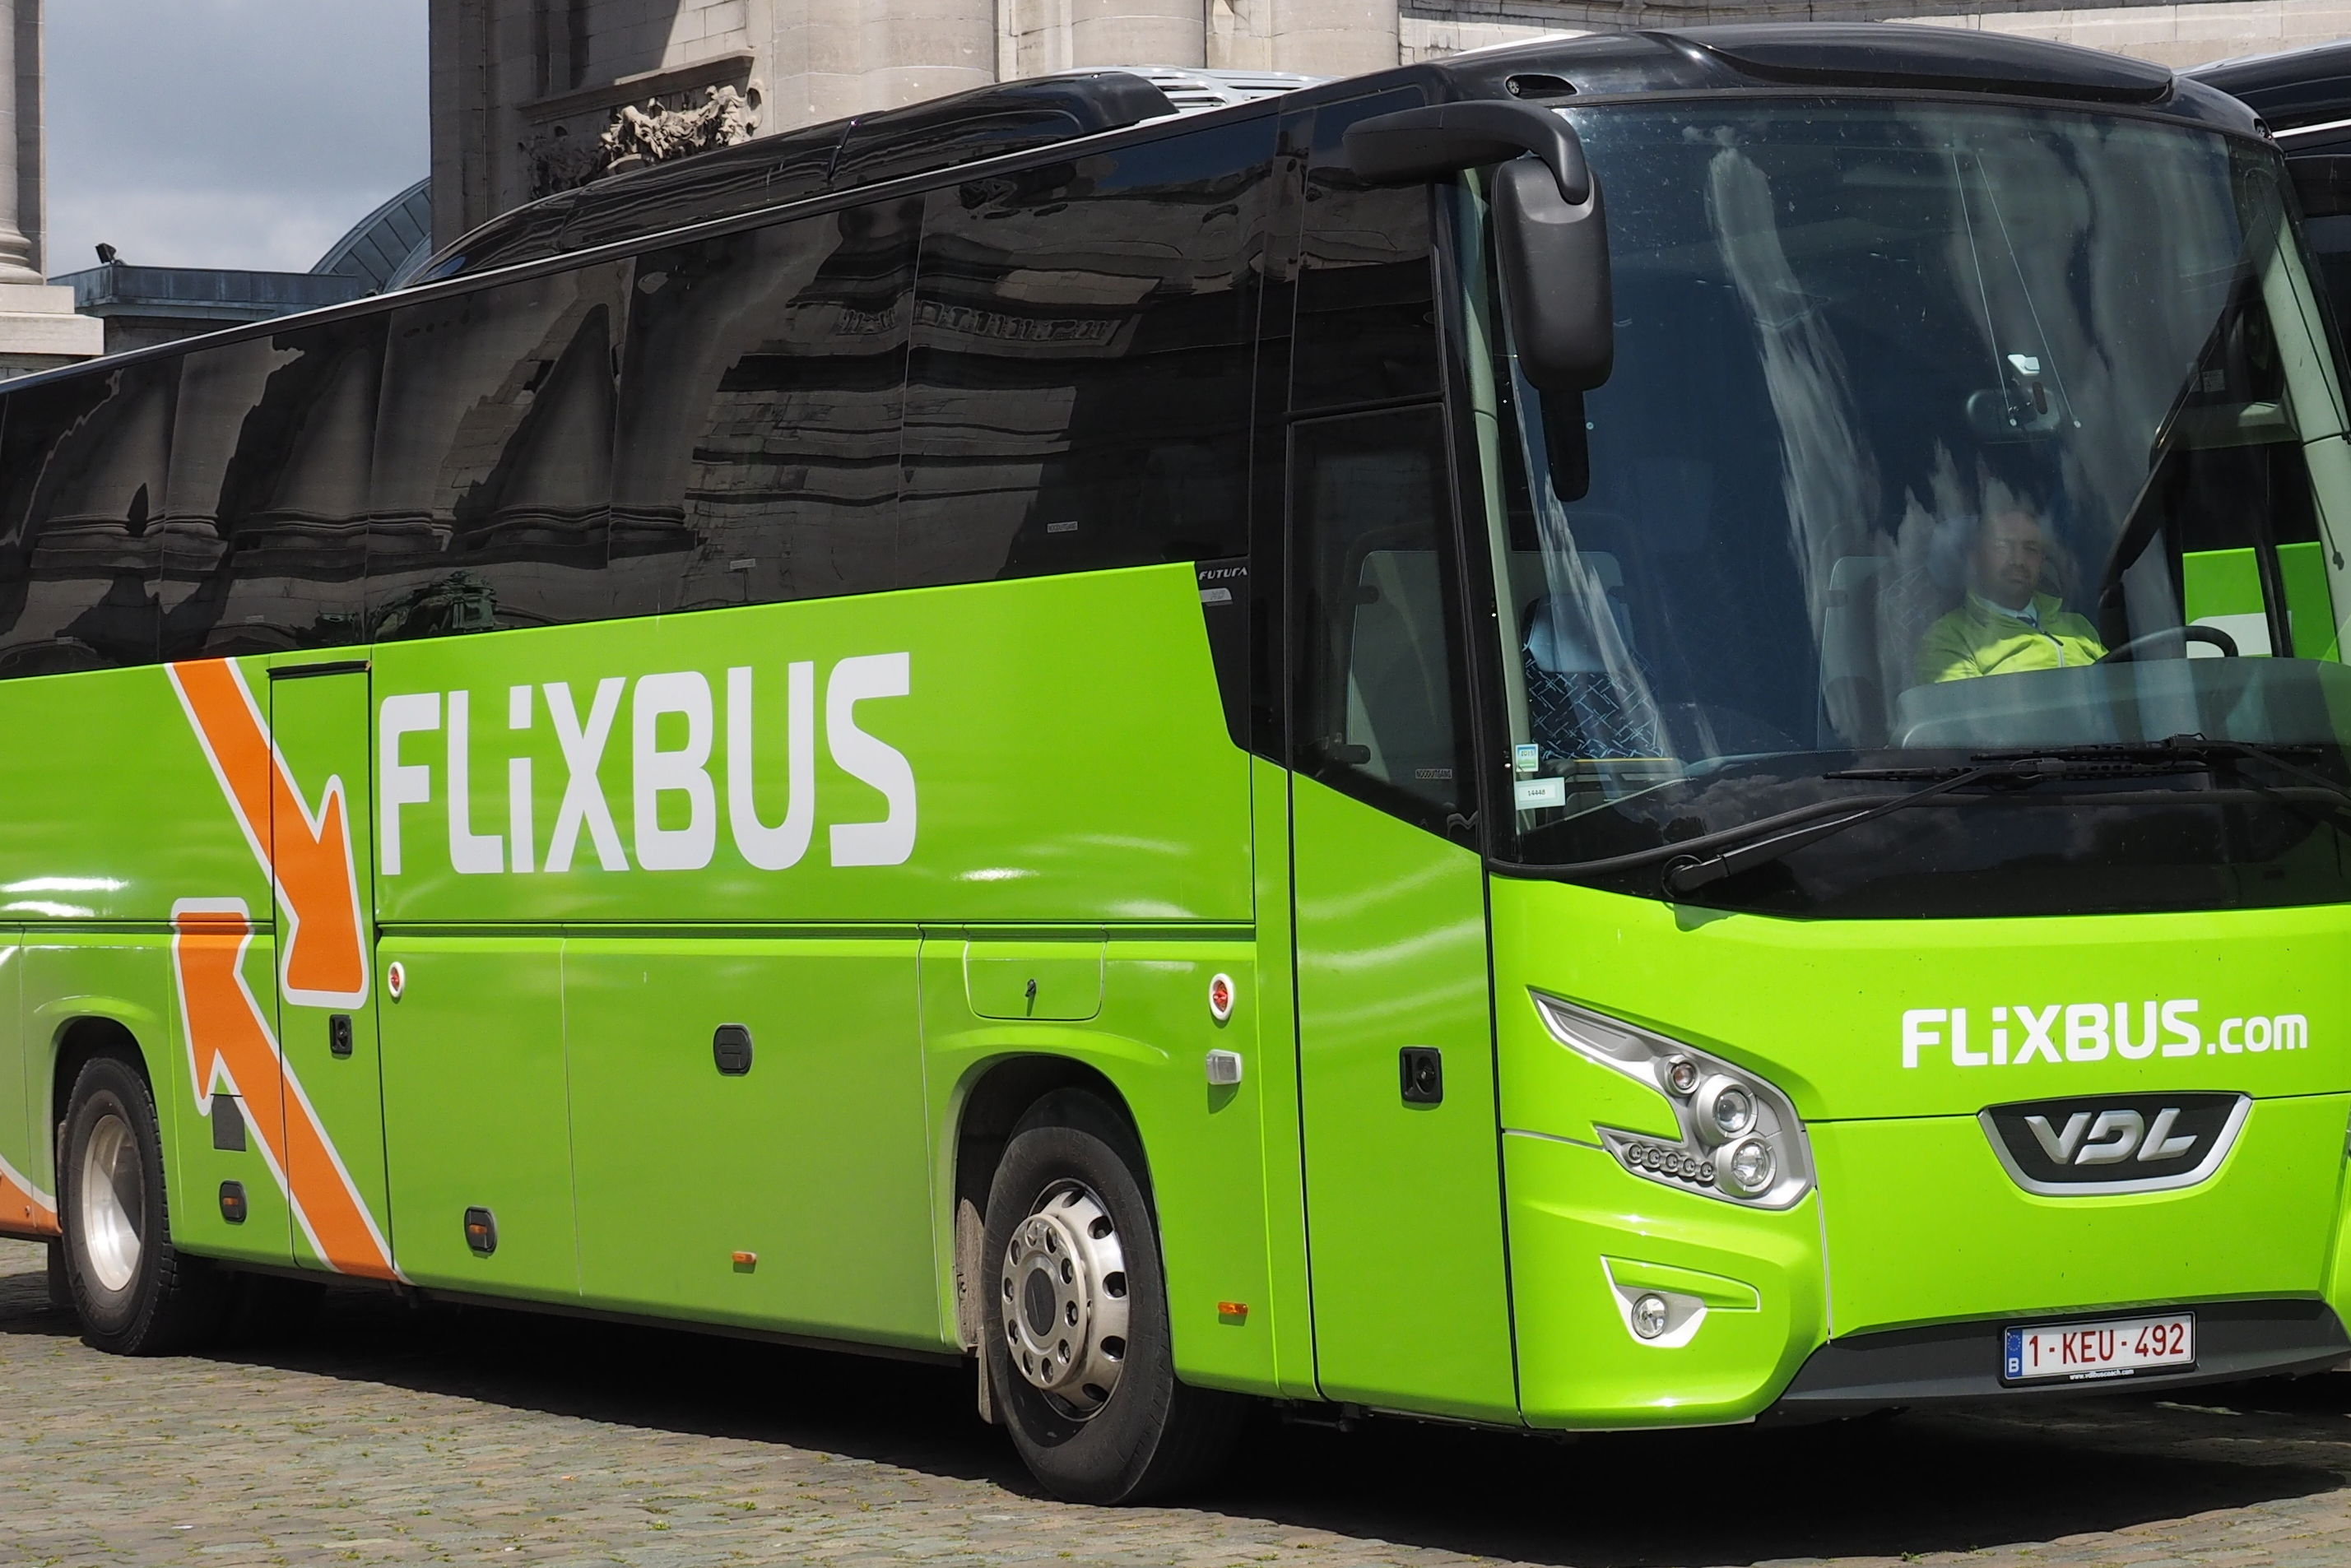 FlixBus Tests Electric Buses in Europe News about Energy